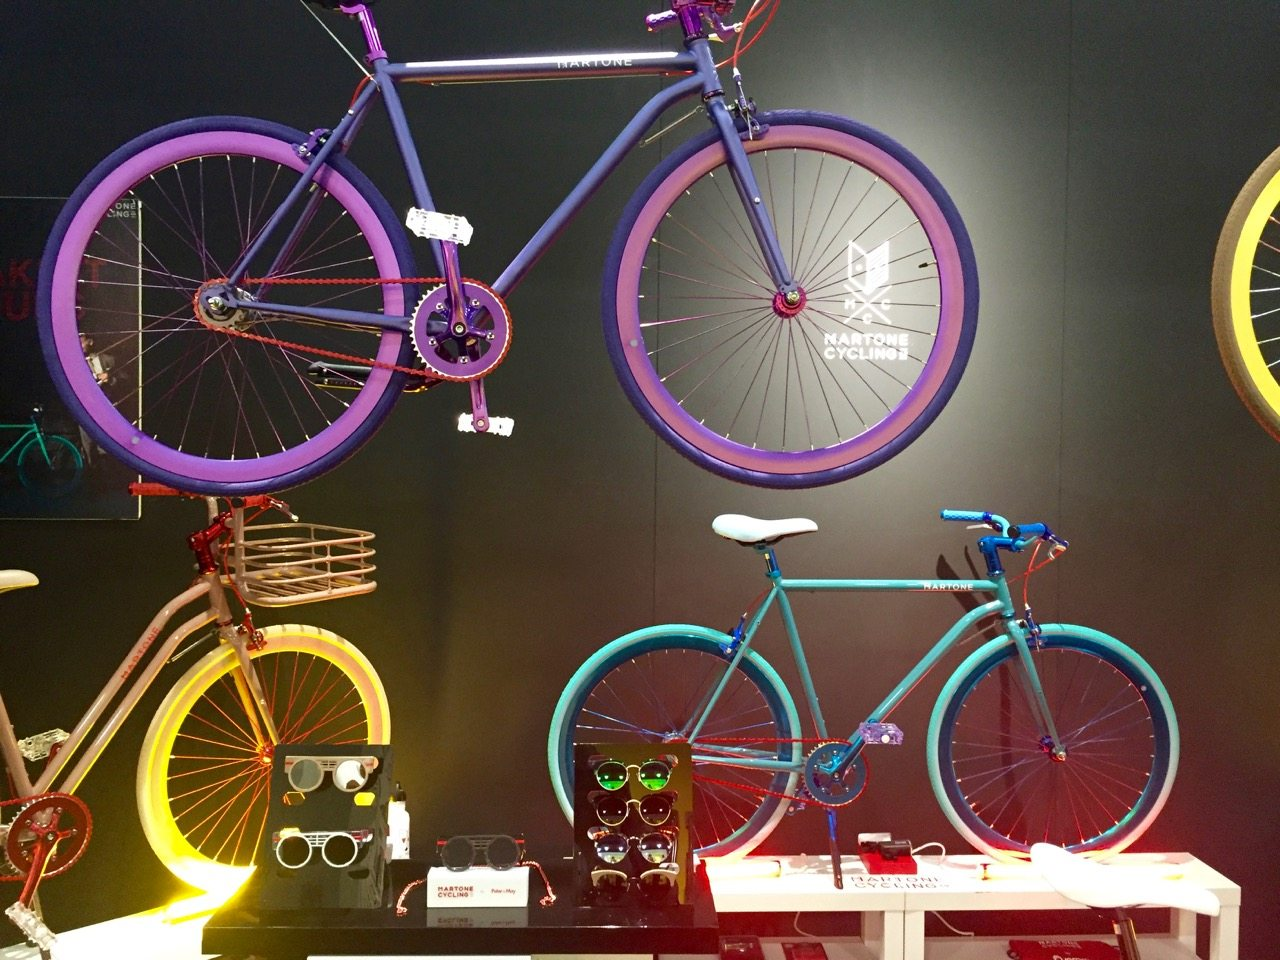 Martone Bicycles on display at Maison & Objet.